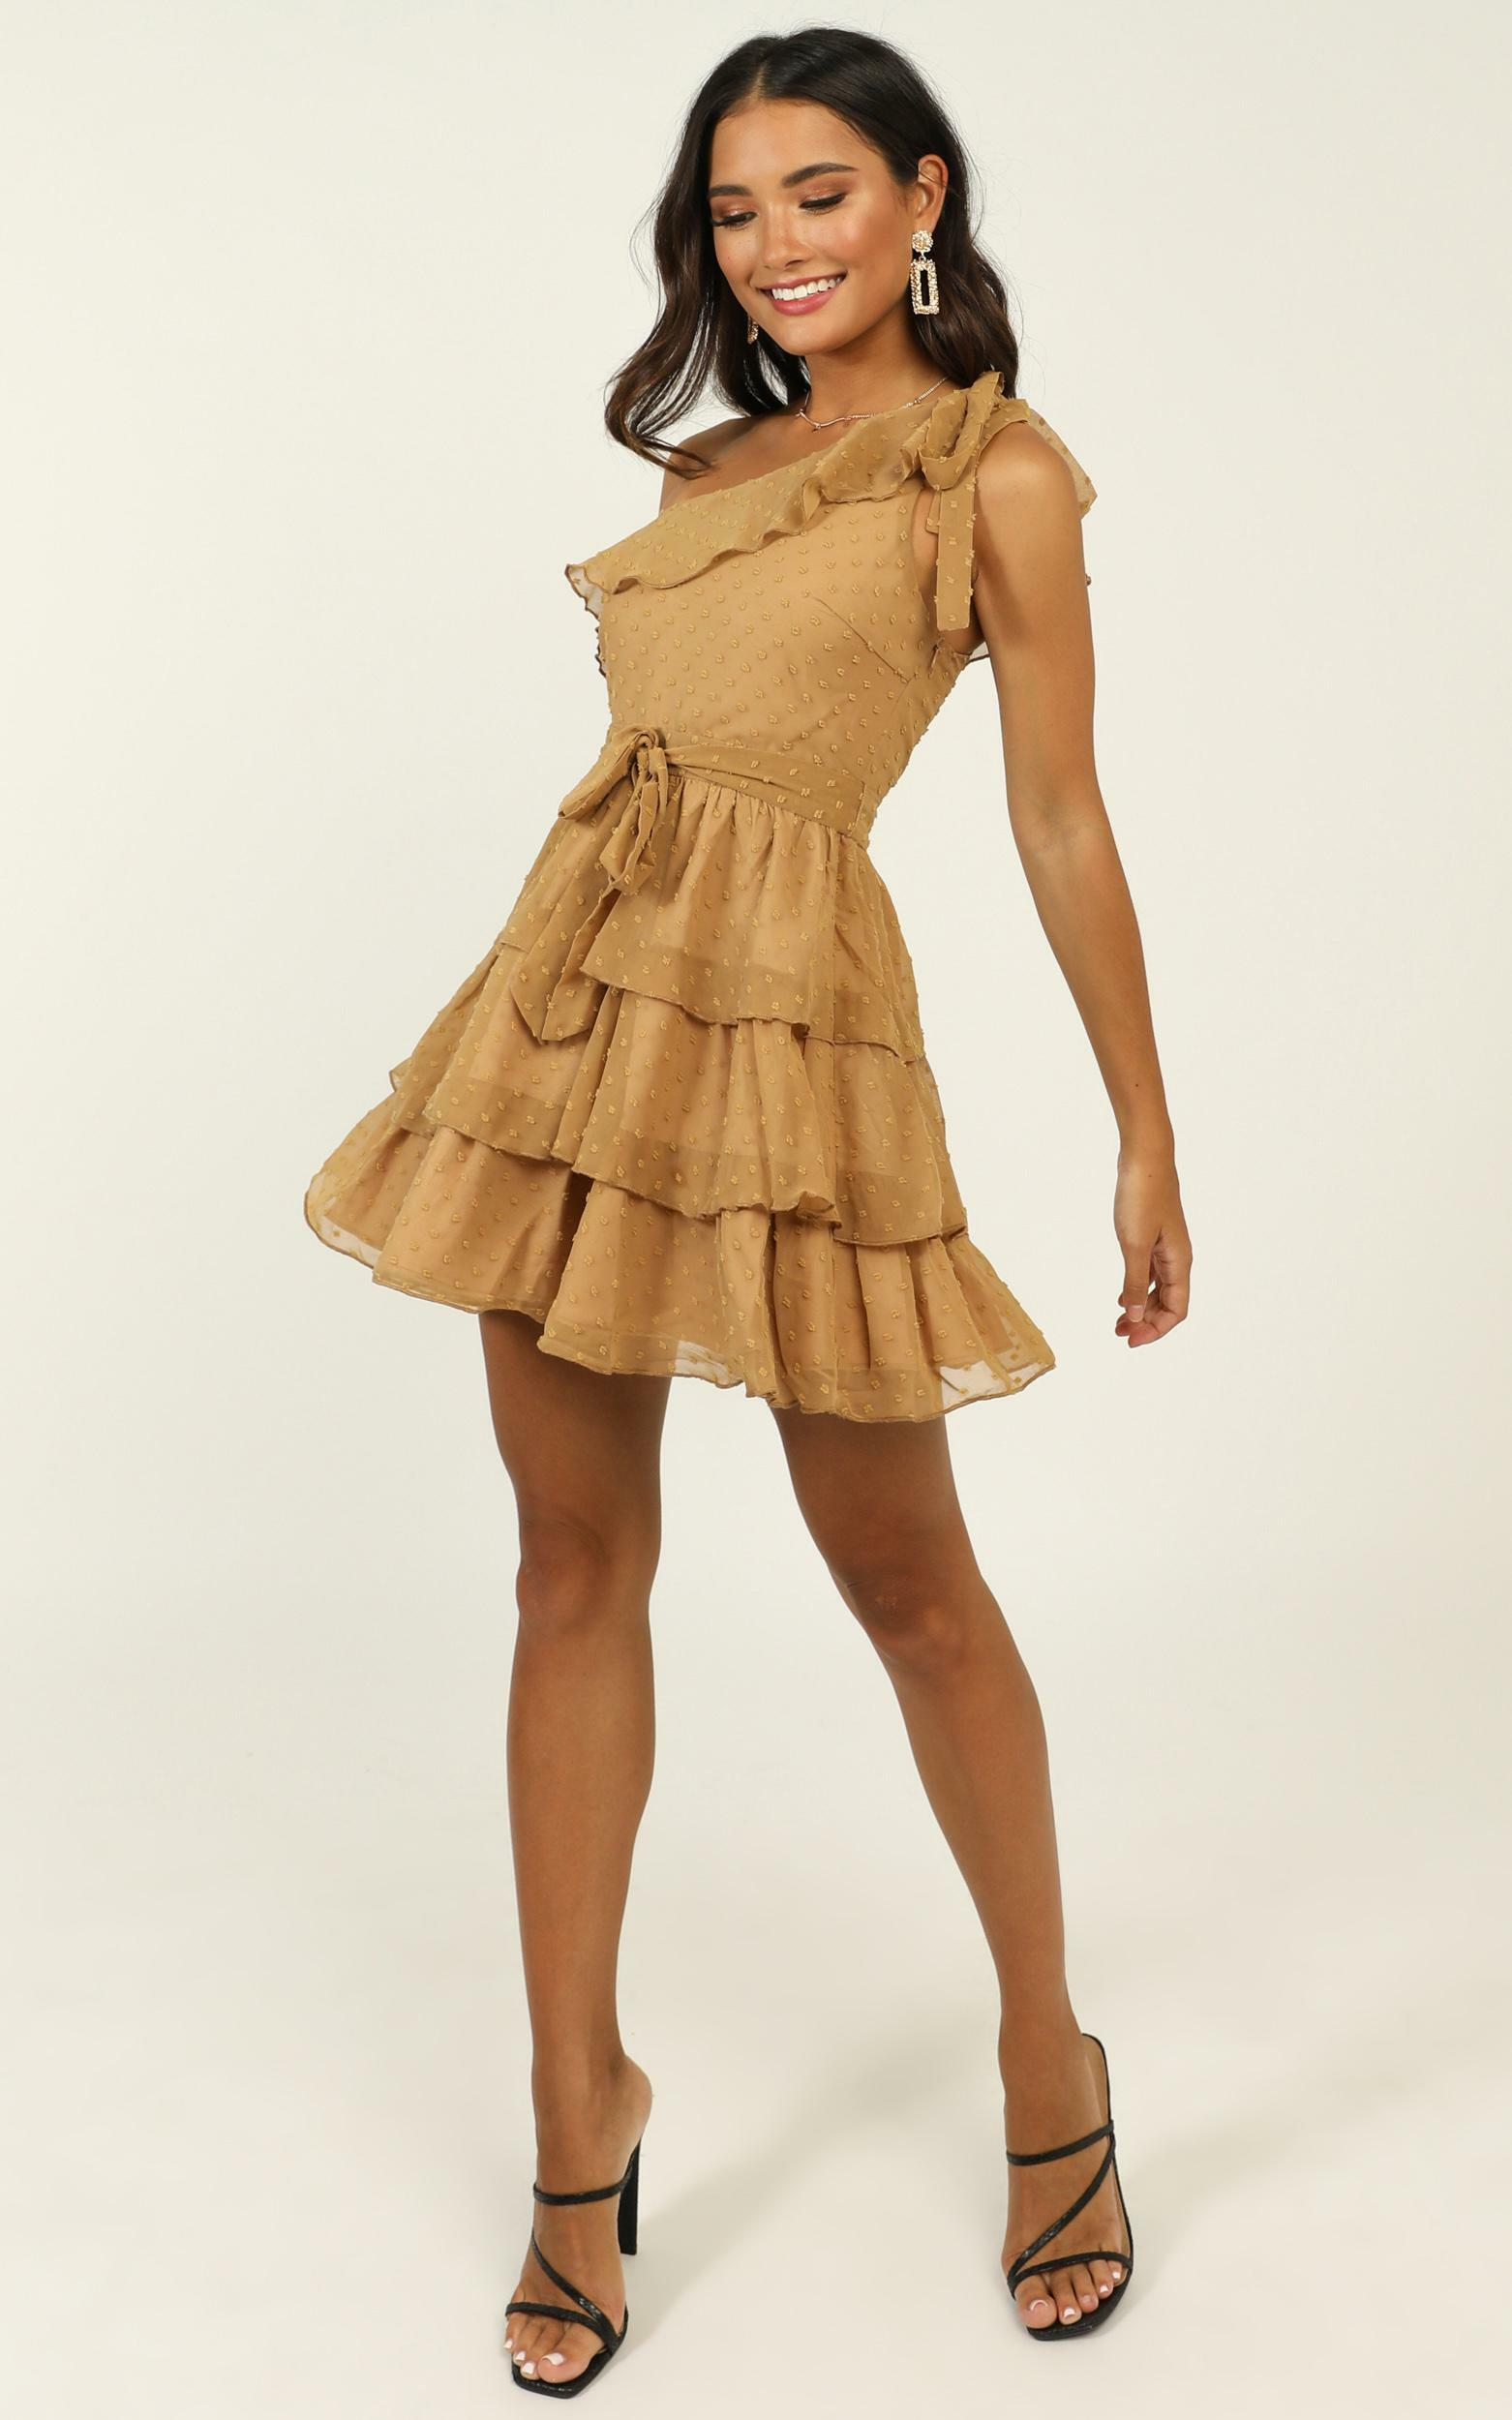 Darling I Am A Daydream Dress in camel- 20 (XXXXL), Camel, hi-res image number null